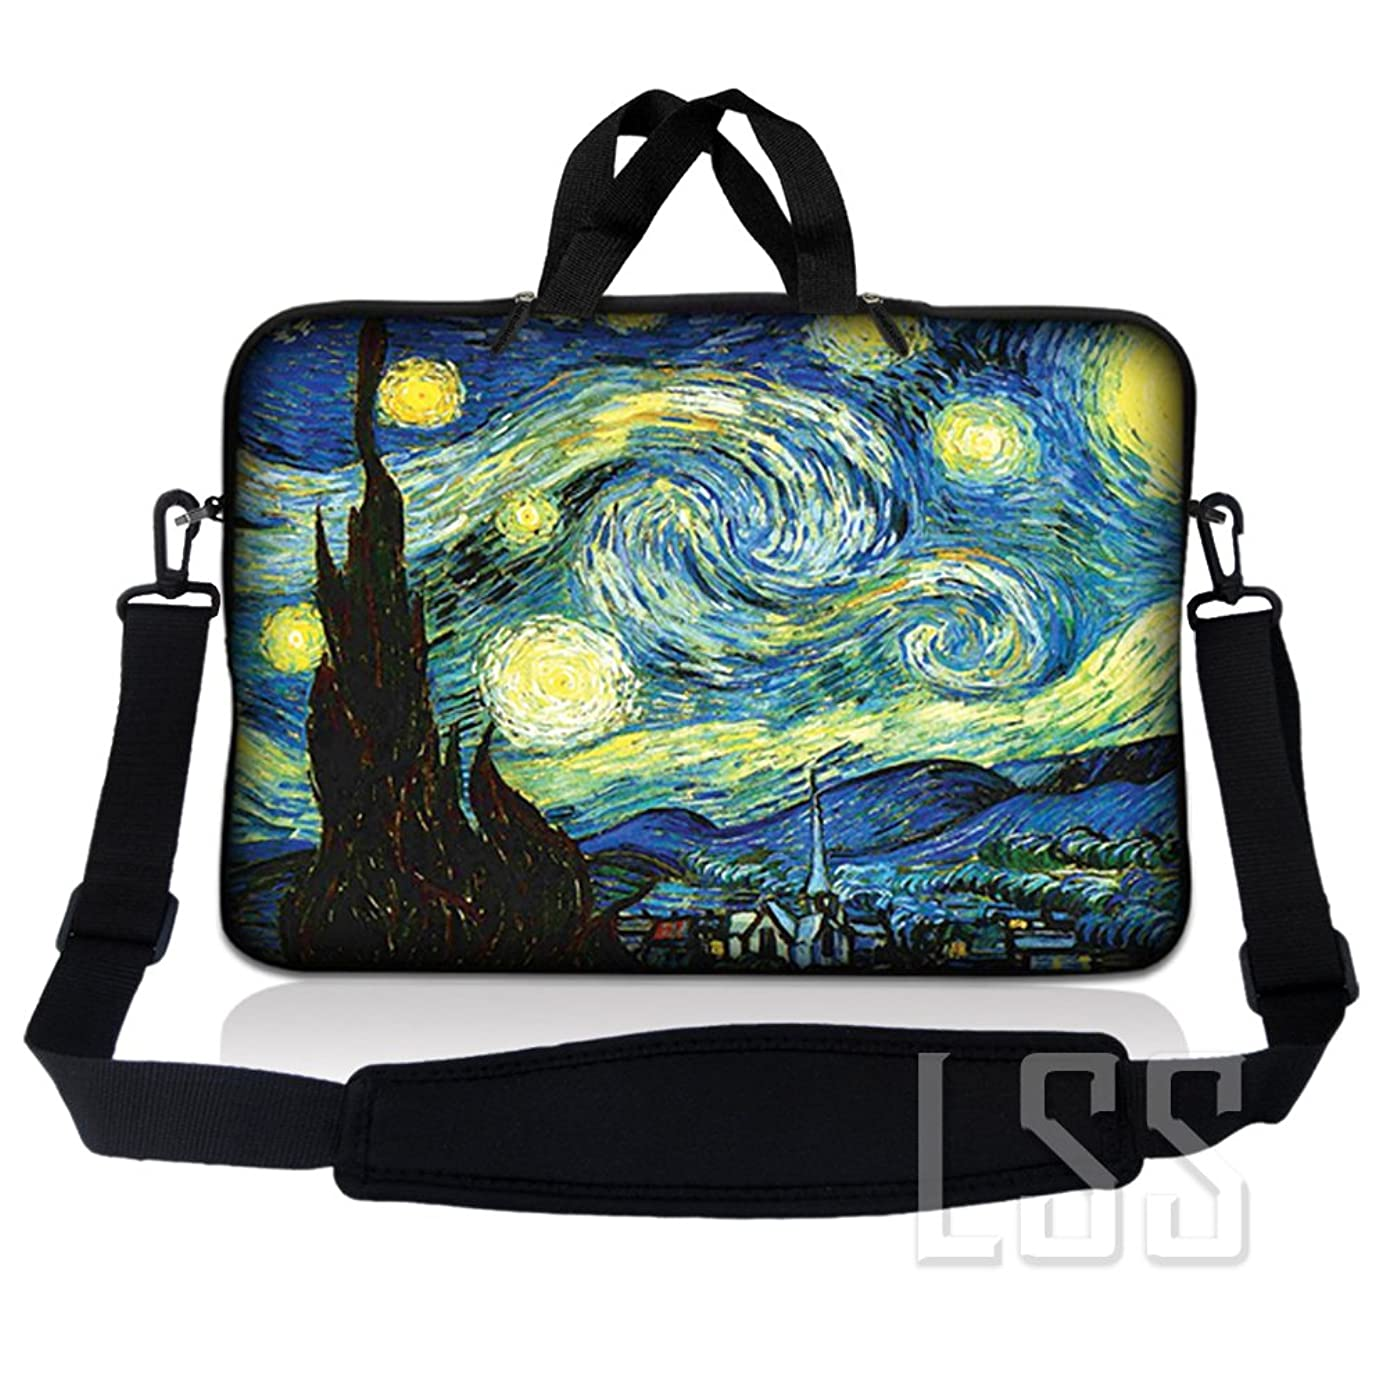 LSS Neoprene Laptop Tablet Sleeve w/ Handle & Adjustable Shoulder Strap Fits Apple Ipad 1 Ipad 2 Ipad 3/Kindle Fire / Samsung Galaxy Tablet / Asus Eee Pad / Acer Iconia Tab /Acer Aspire one/Dell inspiron mini/Samsung N145/Toshiba/Kindle DX/Lenovo S205/HP Touchpad Mini 210 11